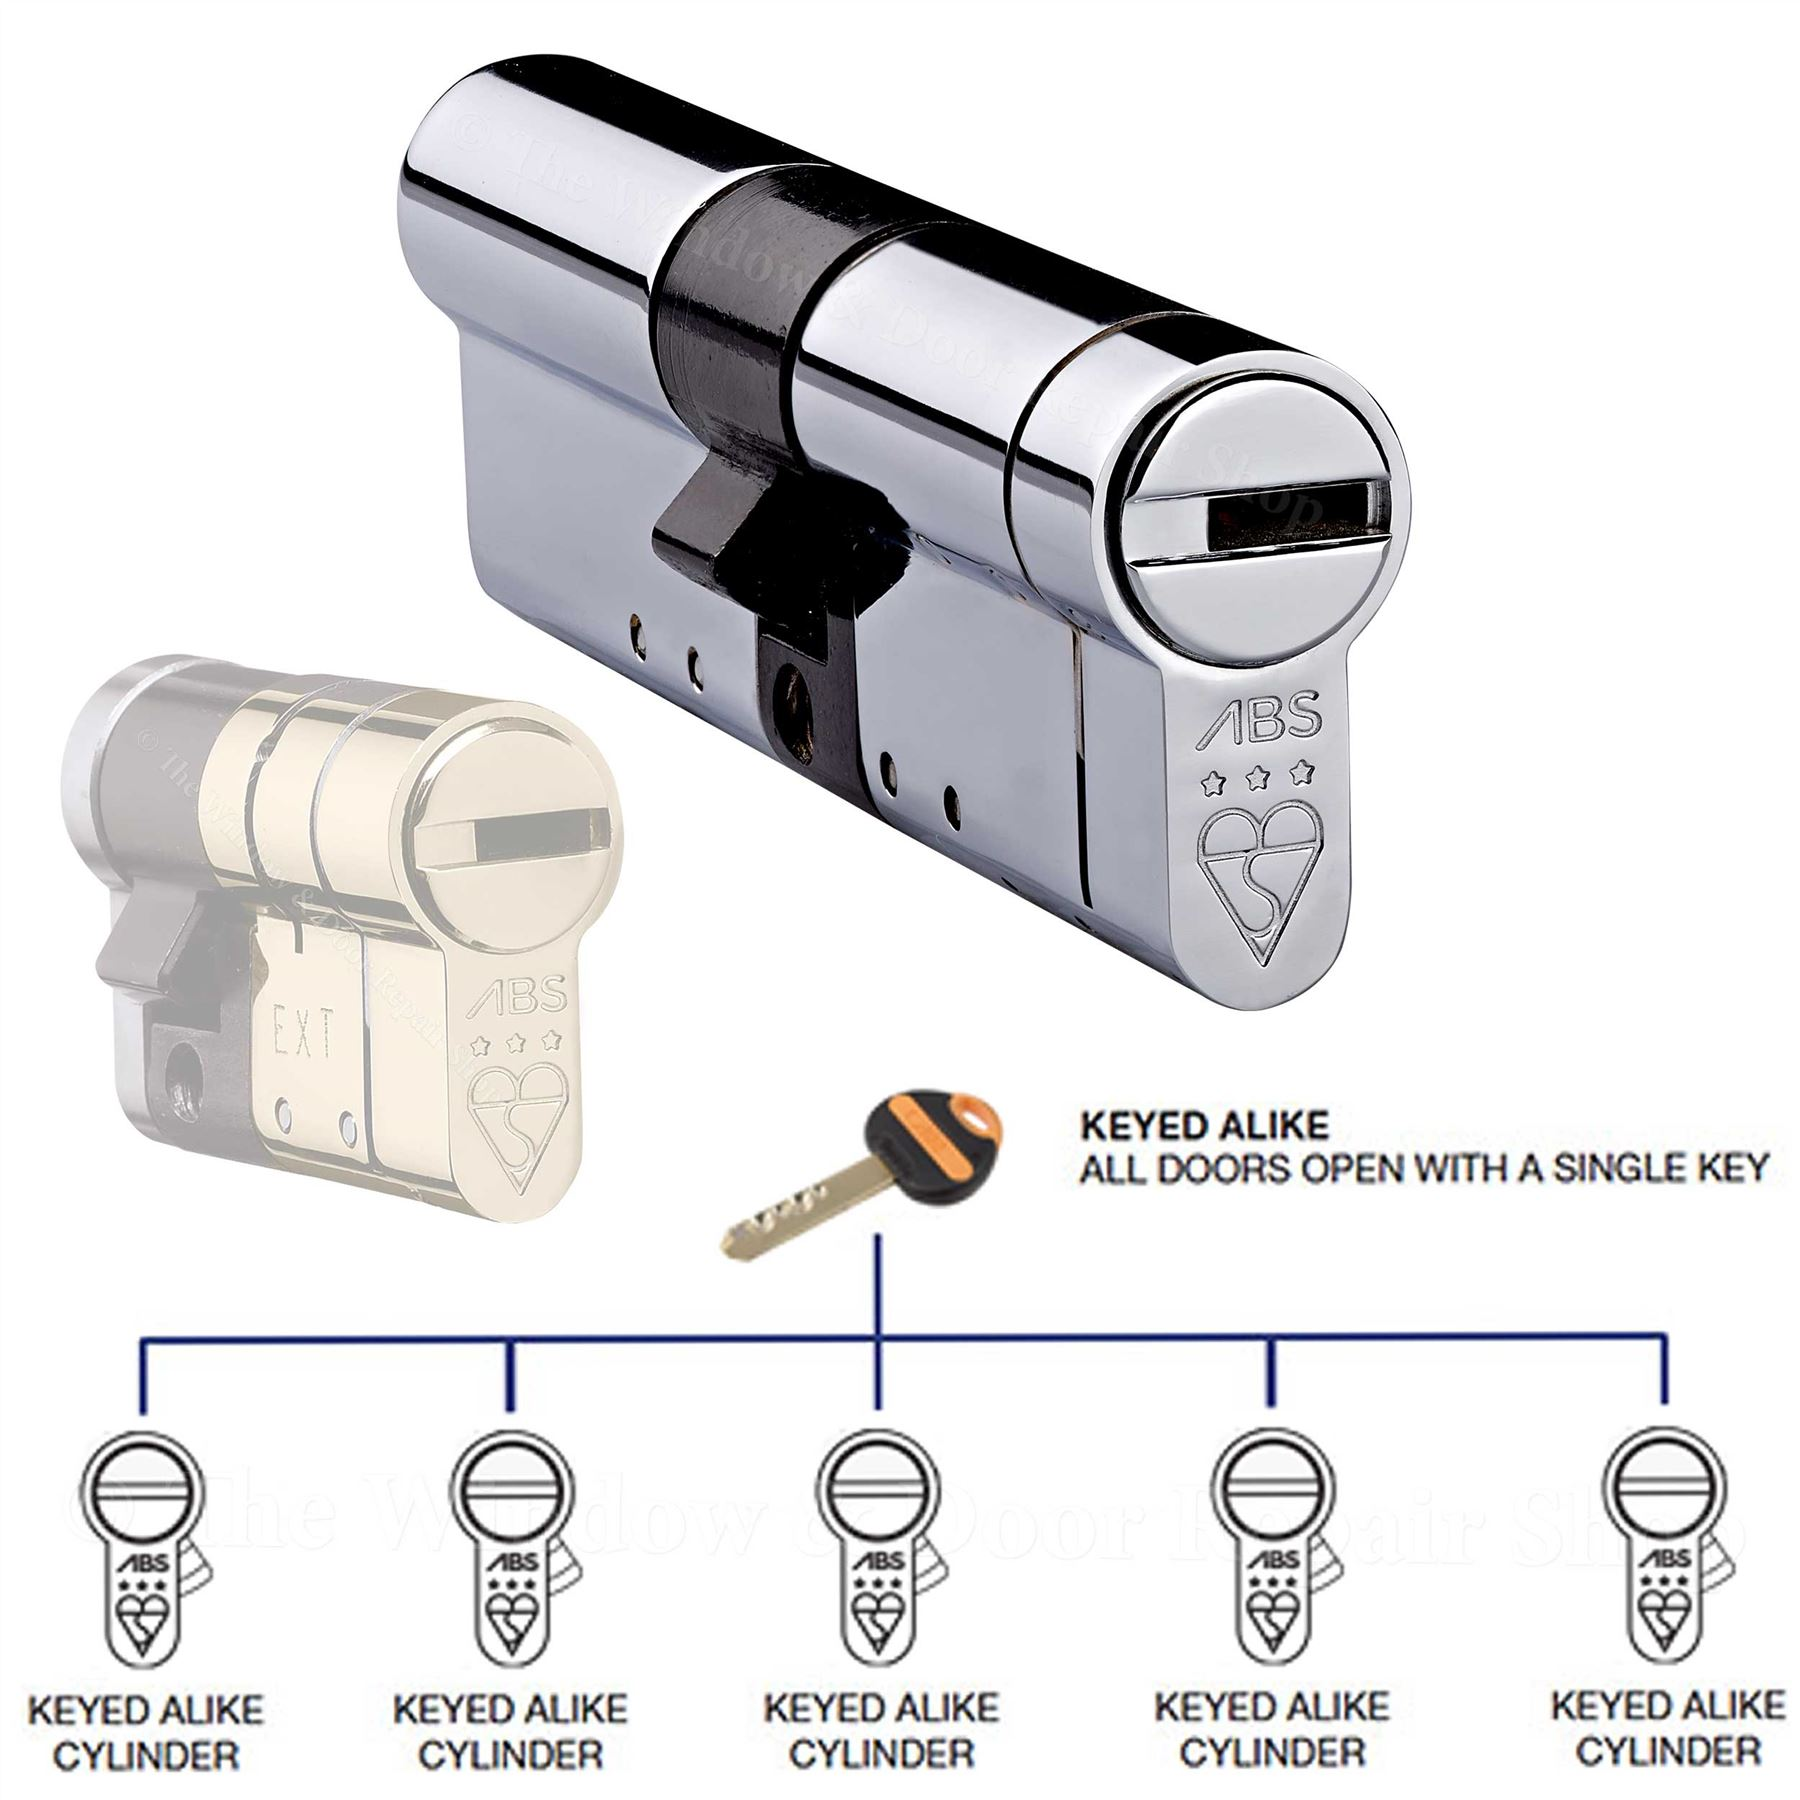 Avocet abs keyed alike euro cylinder upvc door lock anti for 007 door locks